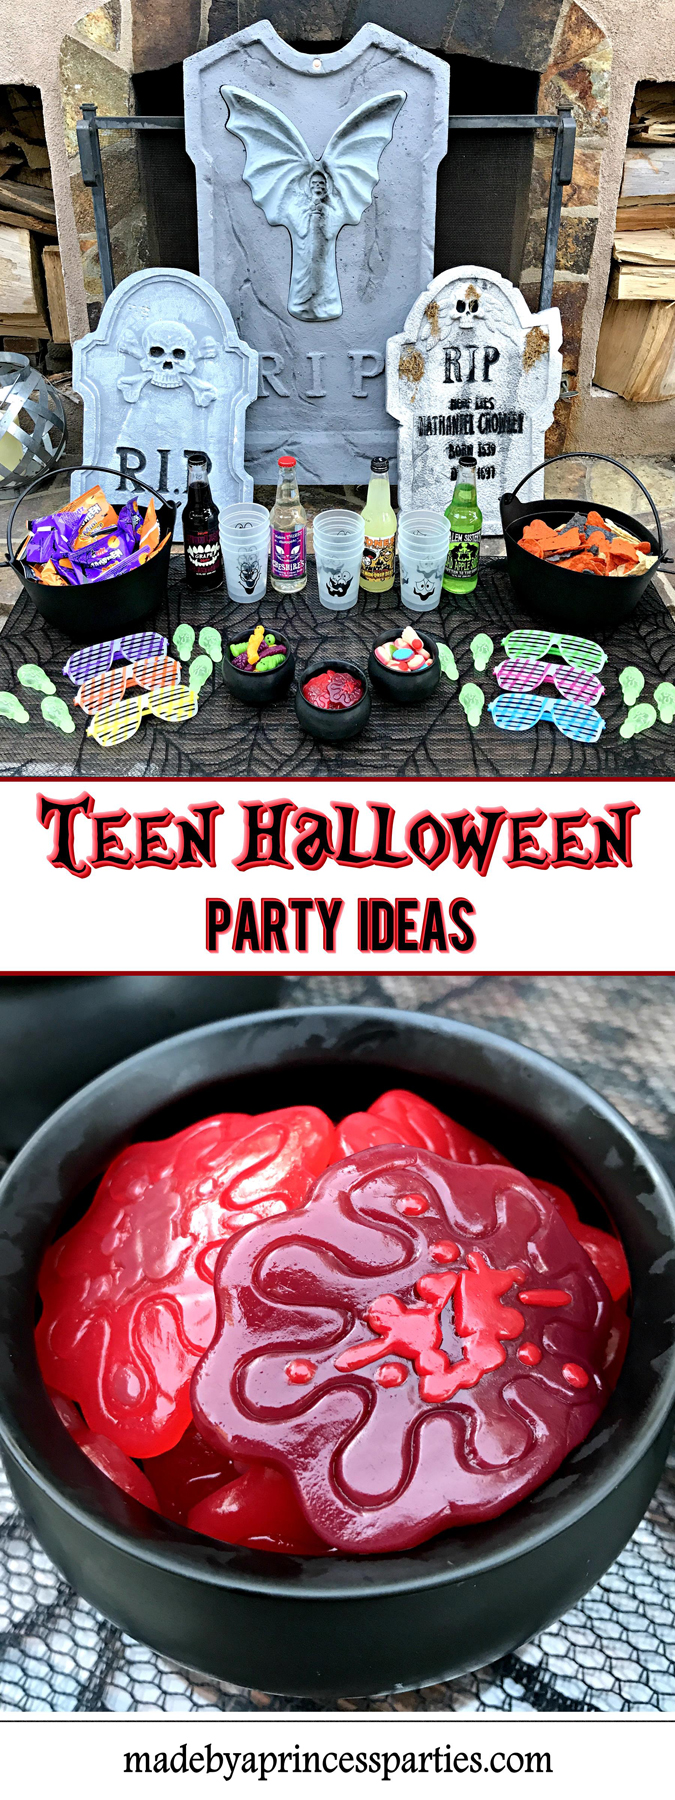 Teen Halloween Party Ideas party filled with snacks and glow in the dark goodies Made by a Princess #halloweenparty #teenhalloween